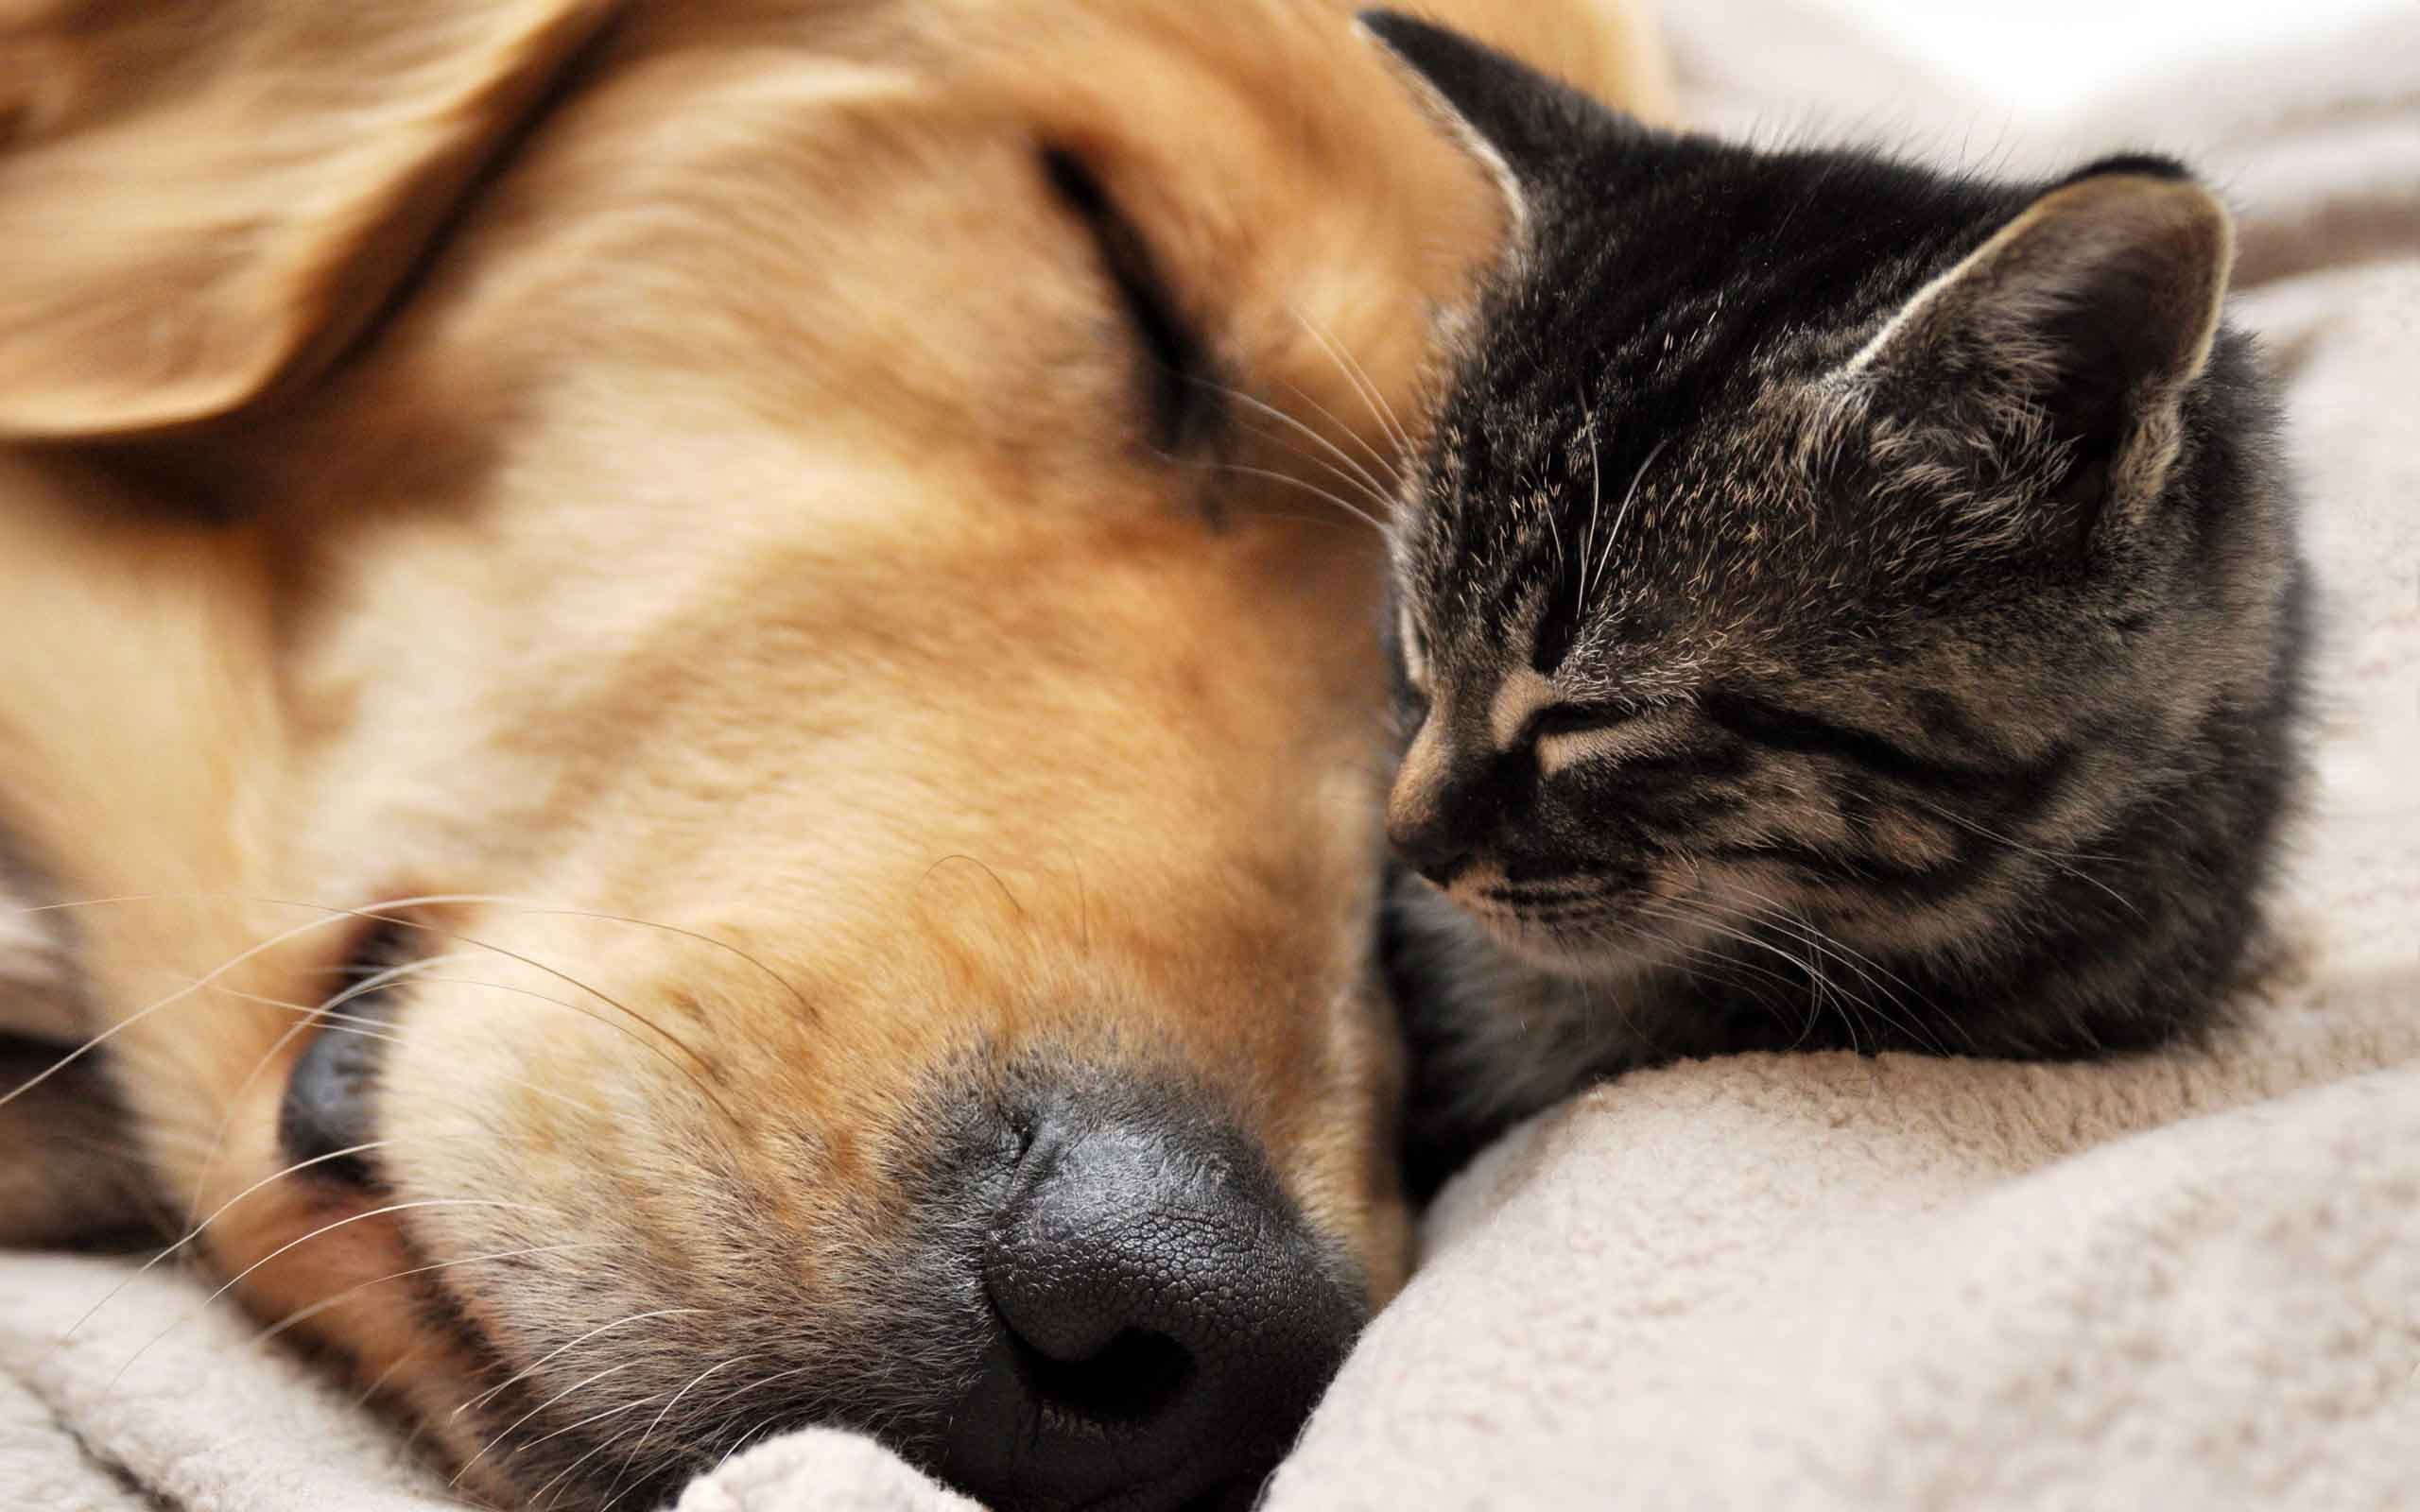 … hd cats and dog images wallpaper.